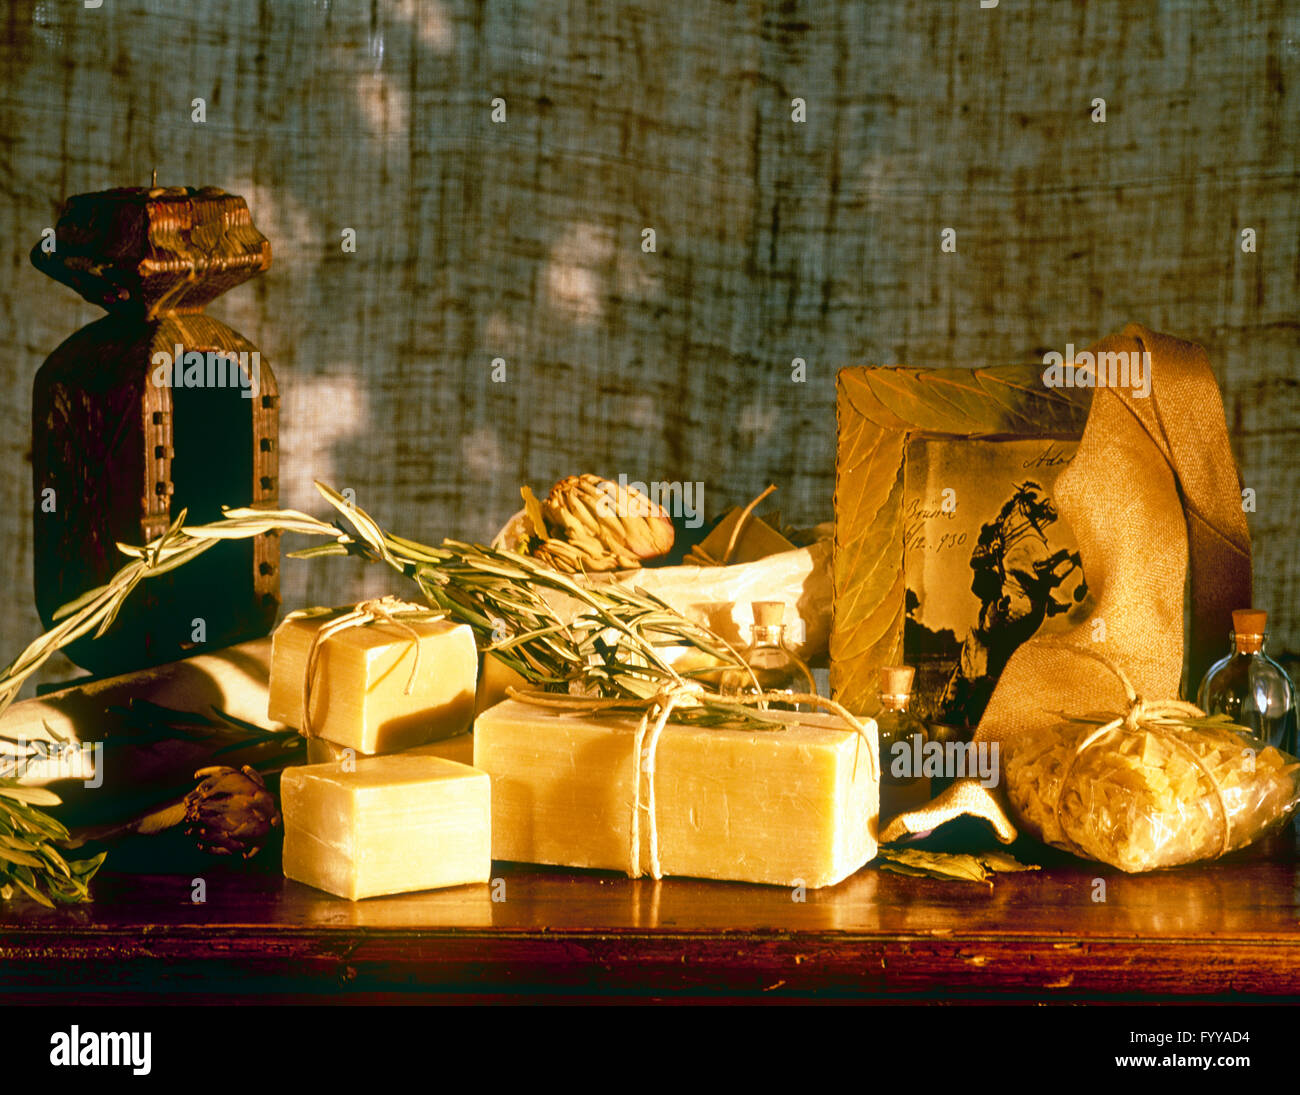 Large cheese board, inside. - Stock Image